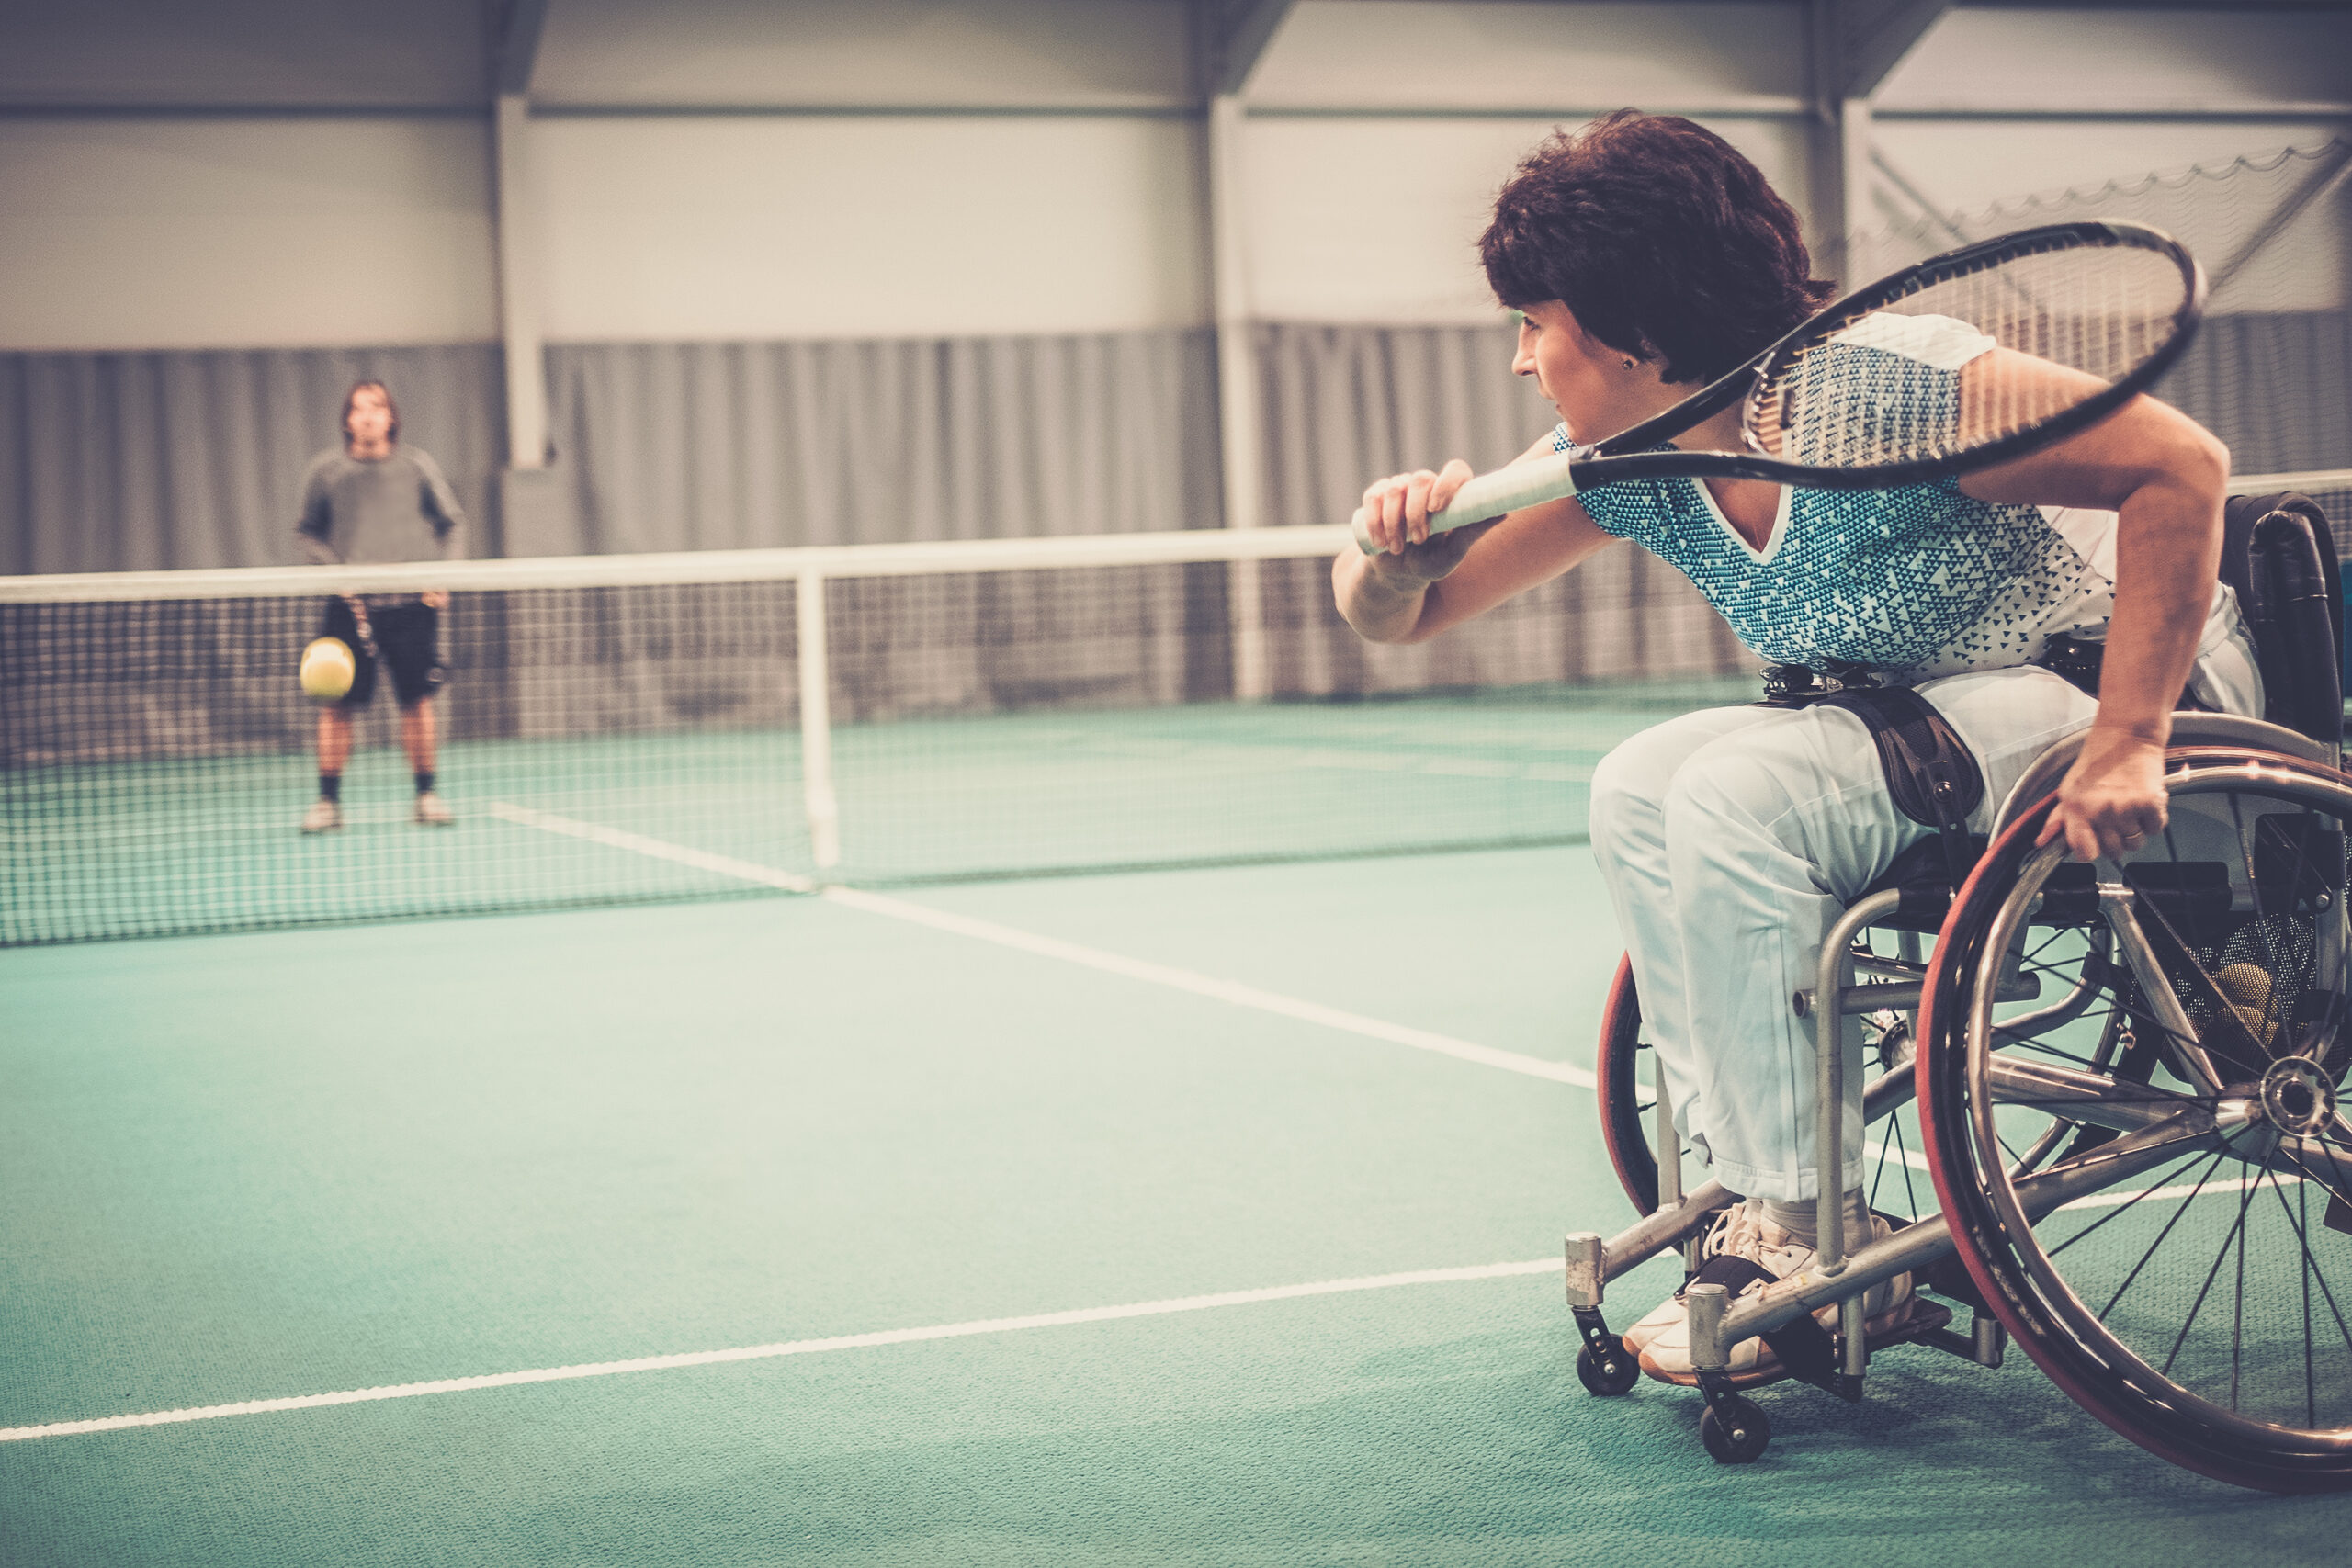 Female para athlete on wheelchair playing tennis on tennis court